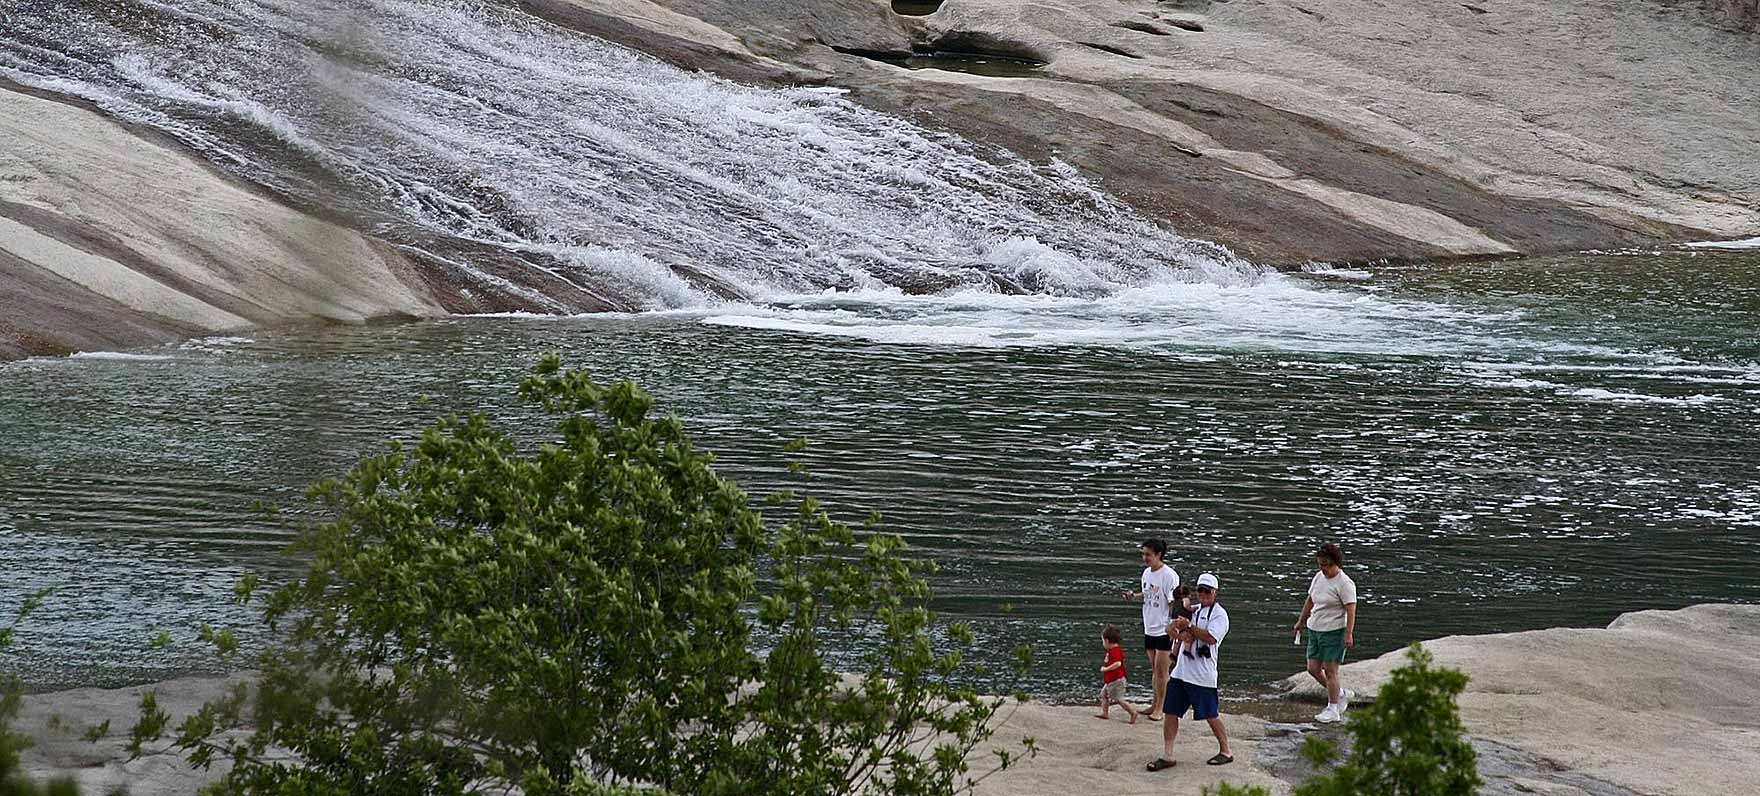 Pedernales Falls State Park. Follow The Pedernales River As It Cascades  Over Steps Of Layered Limestone To Create The Picturesque